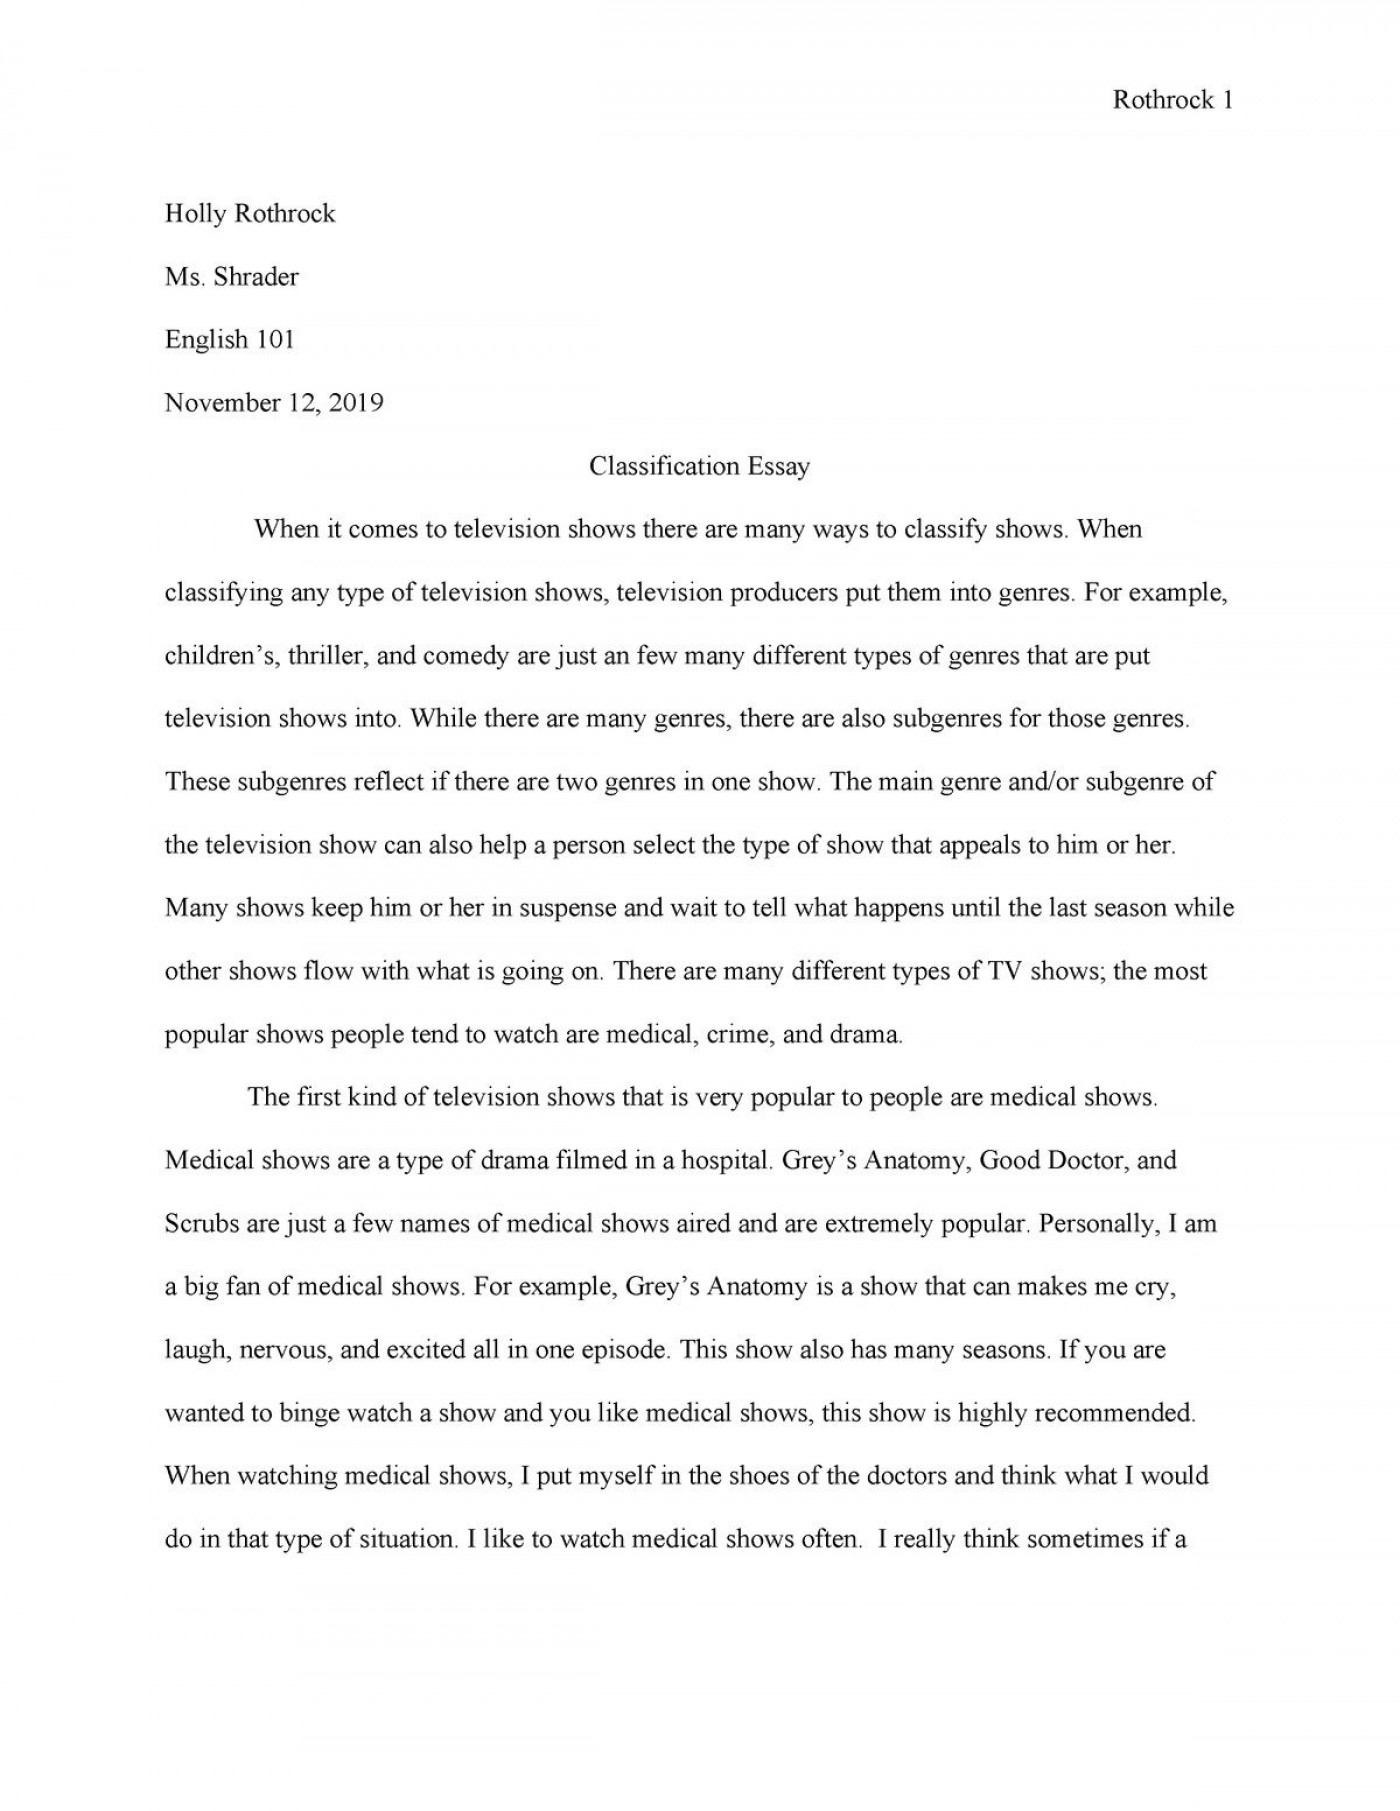 007 Awful Classification Essay Idea  About Type Of Food Topic Example1400